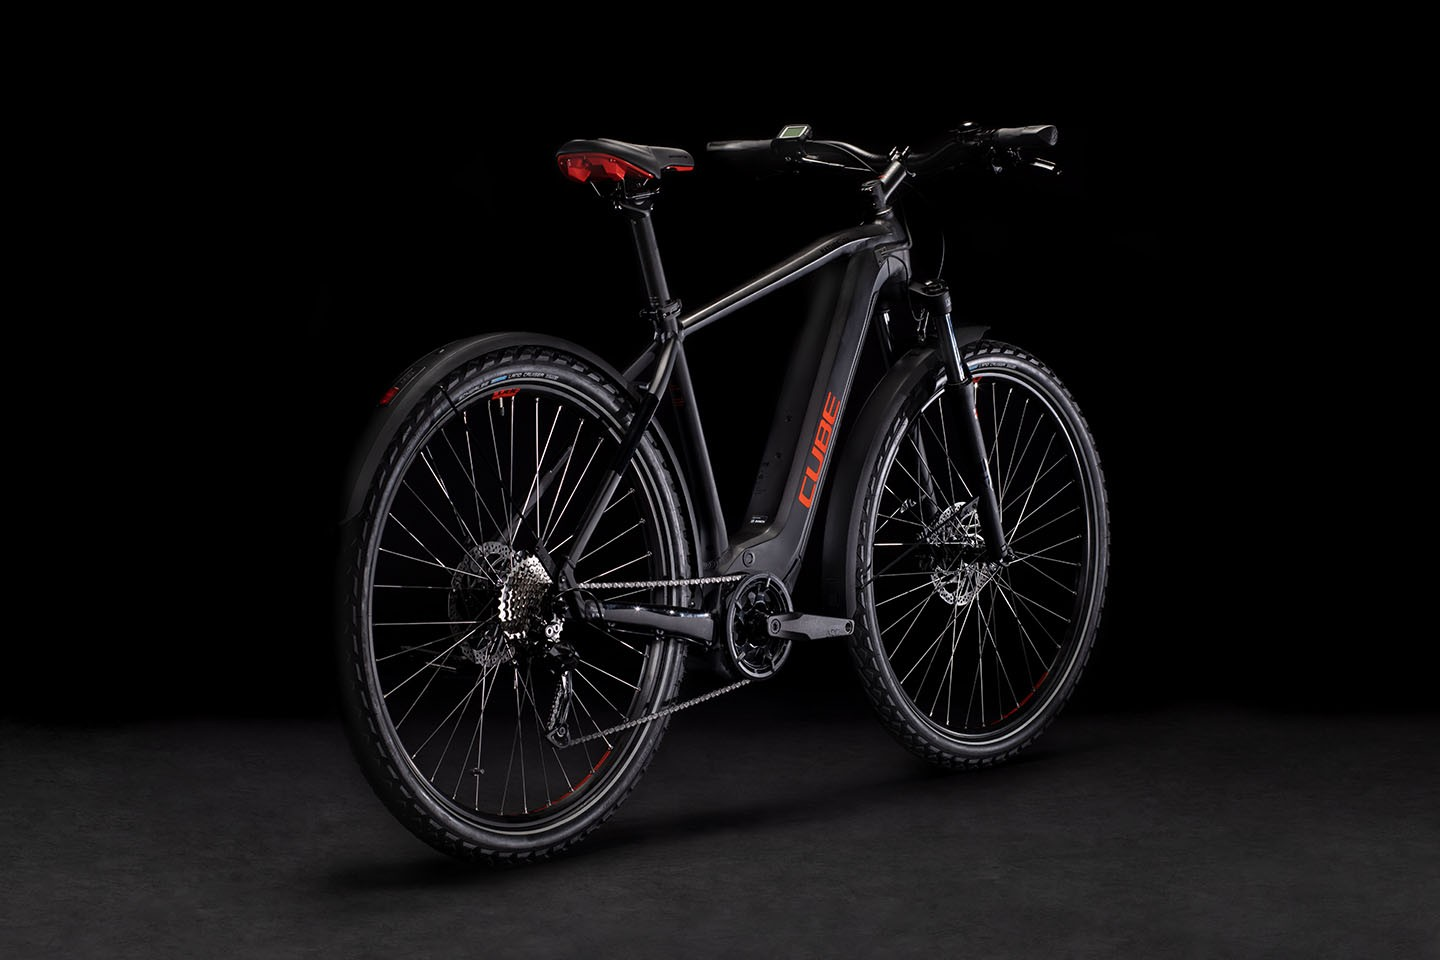 https://w8w5m3f8.stackpathcdn.com/22475/vtc-electrique-nature-hybrid-one-allroad-500-ou-625wh-cadre-mixte.jpg